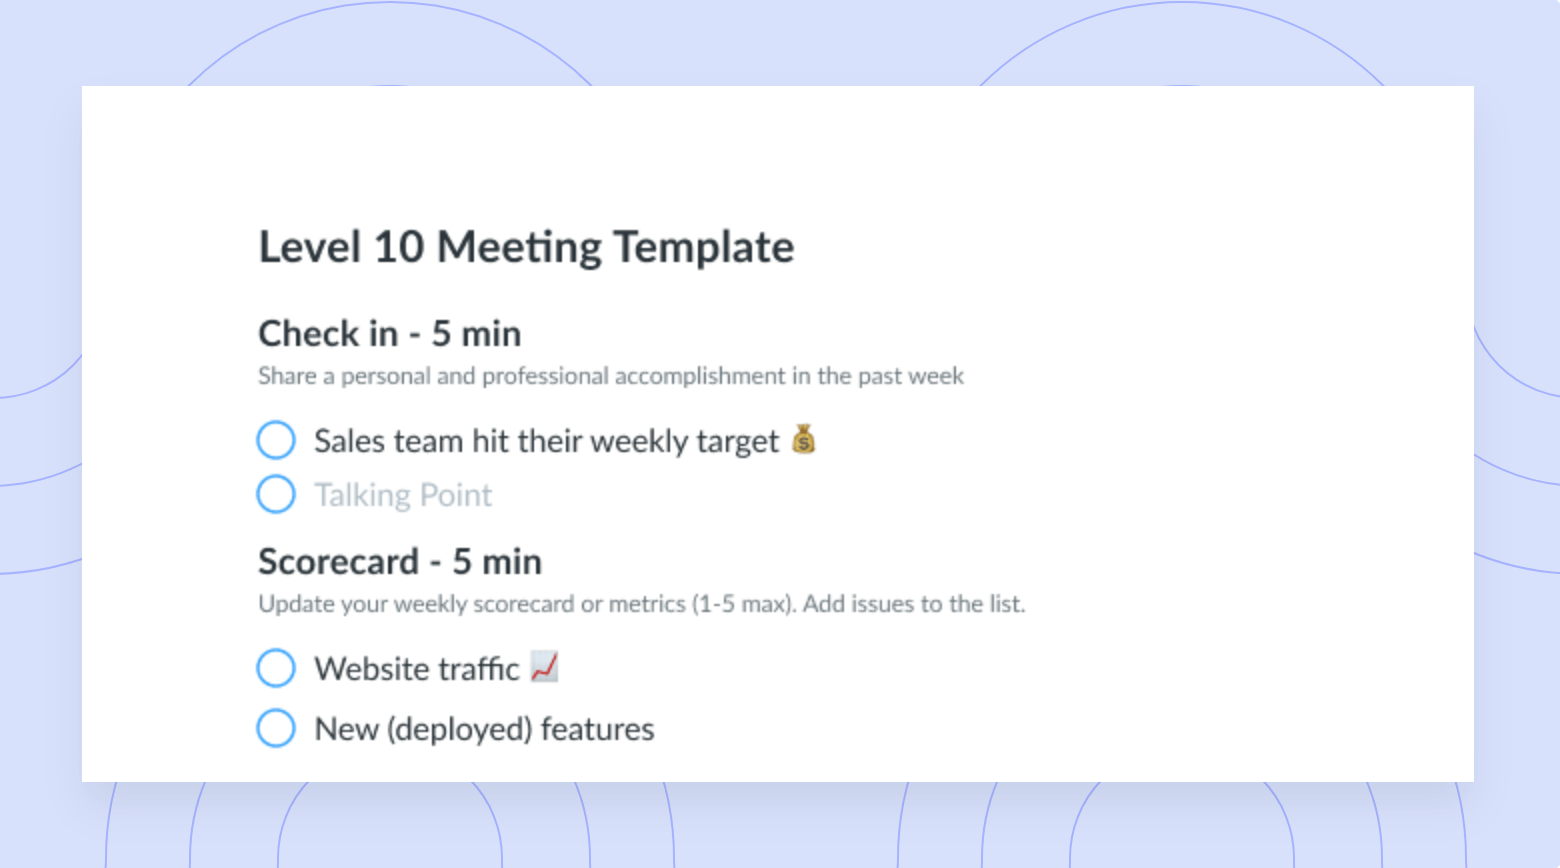 Instead, in the past, i've used this freelancer level 10 meeting templatei created that solves the big problems with the l10 meetings for very nimble businesses: Meeting Agenda Template Compatible With Eos Fellow App